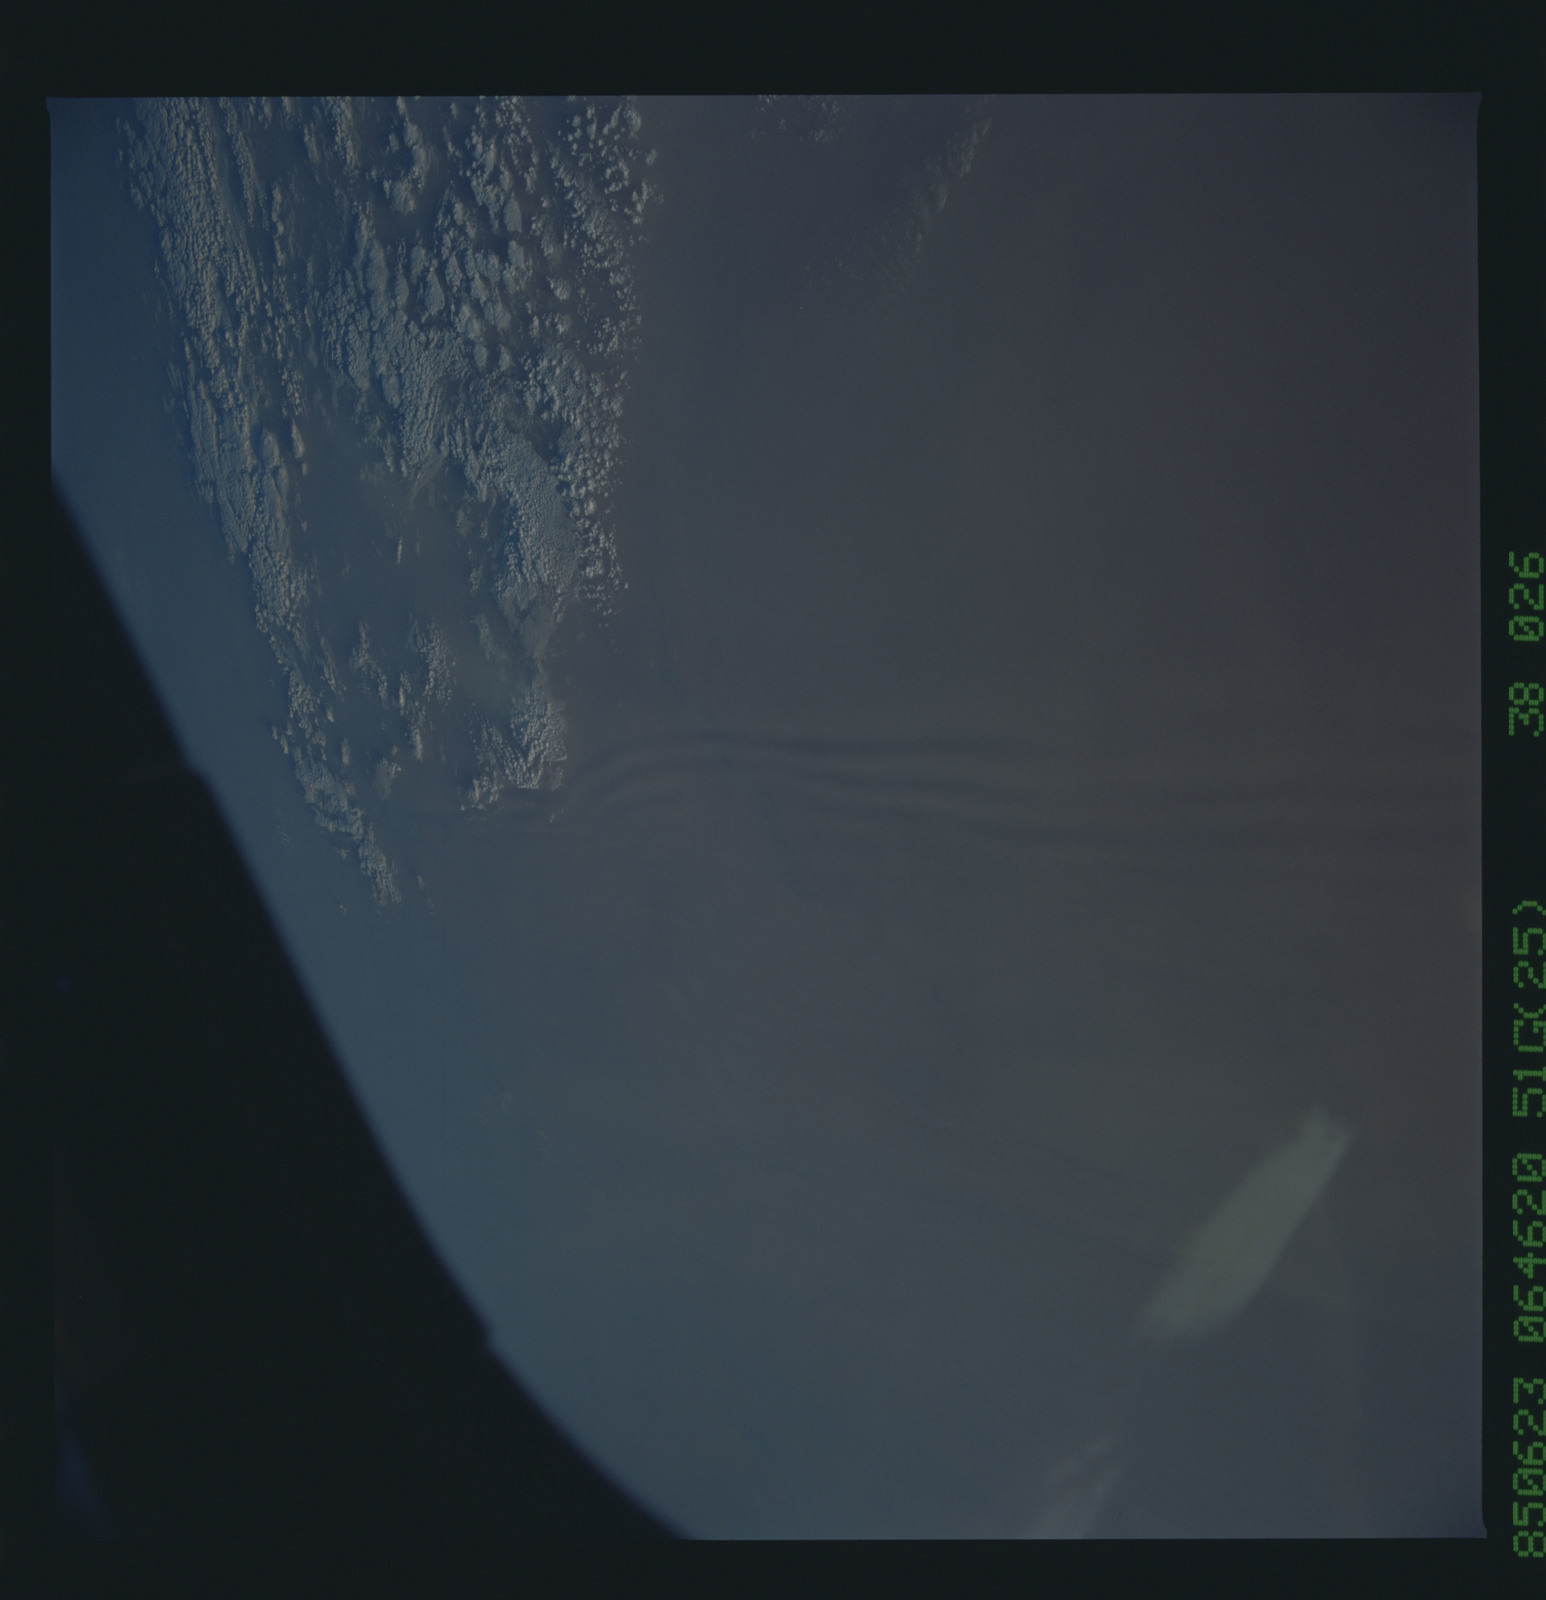 51G-38-026 - STS-51G - STS-51G earth observations